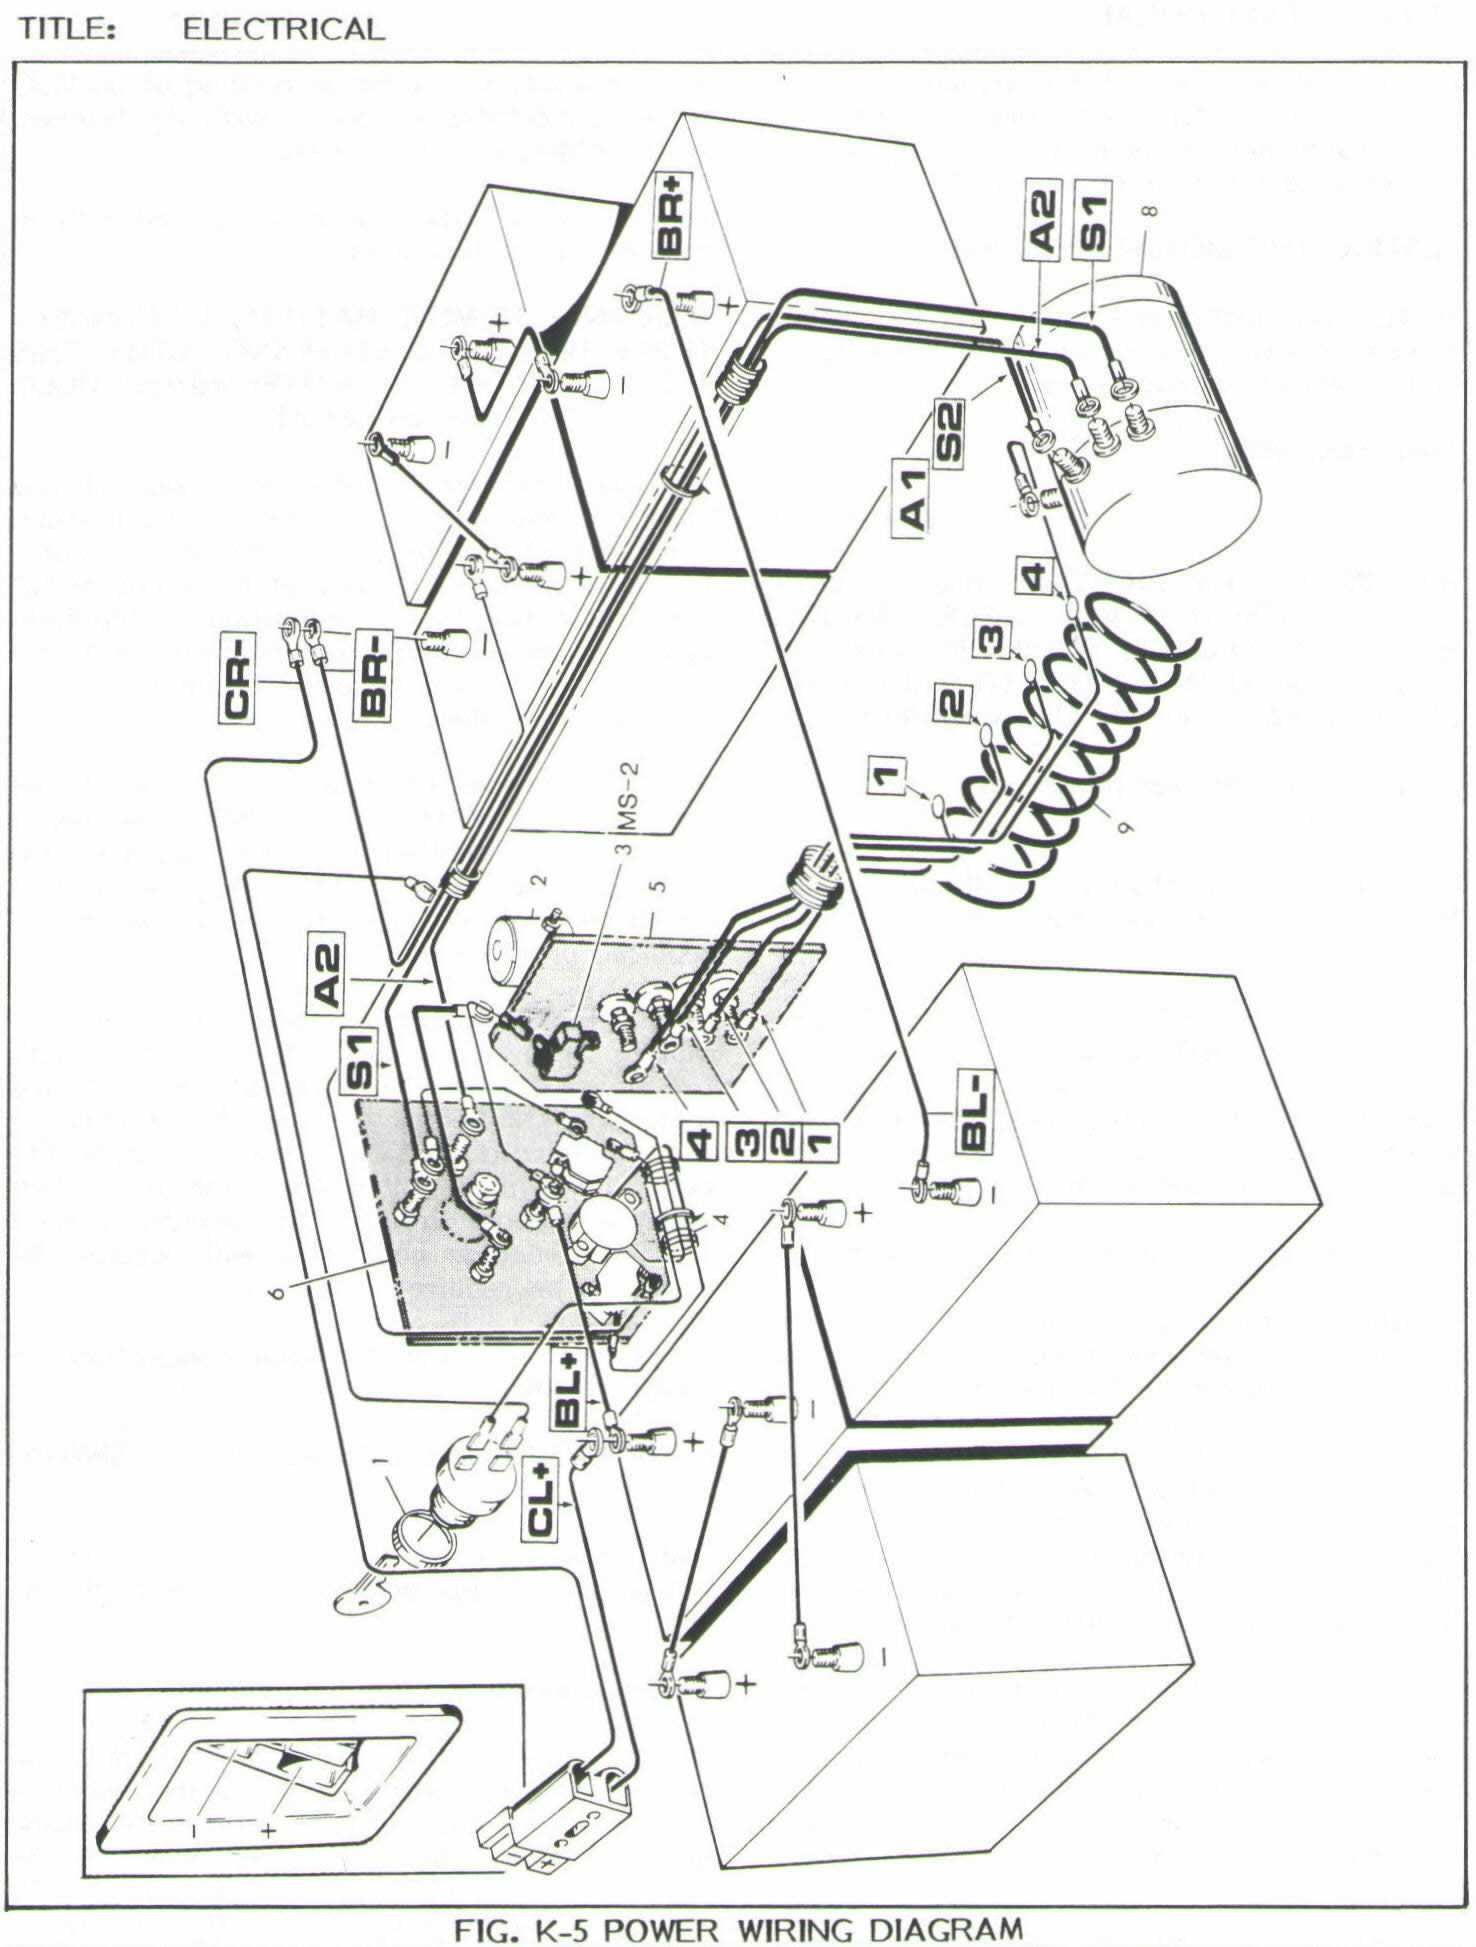 Club Car Wiring Diagram 48 Volt Luxury Amazing Ds 90 Wiring Diagram S Electrical and Wiring